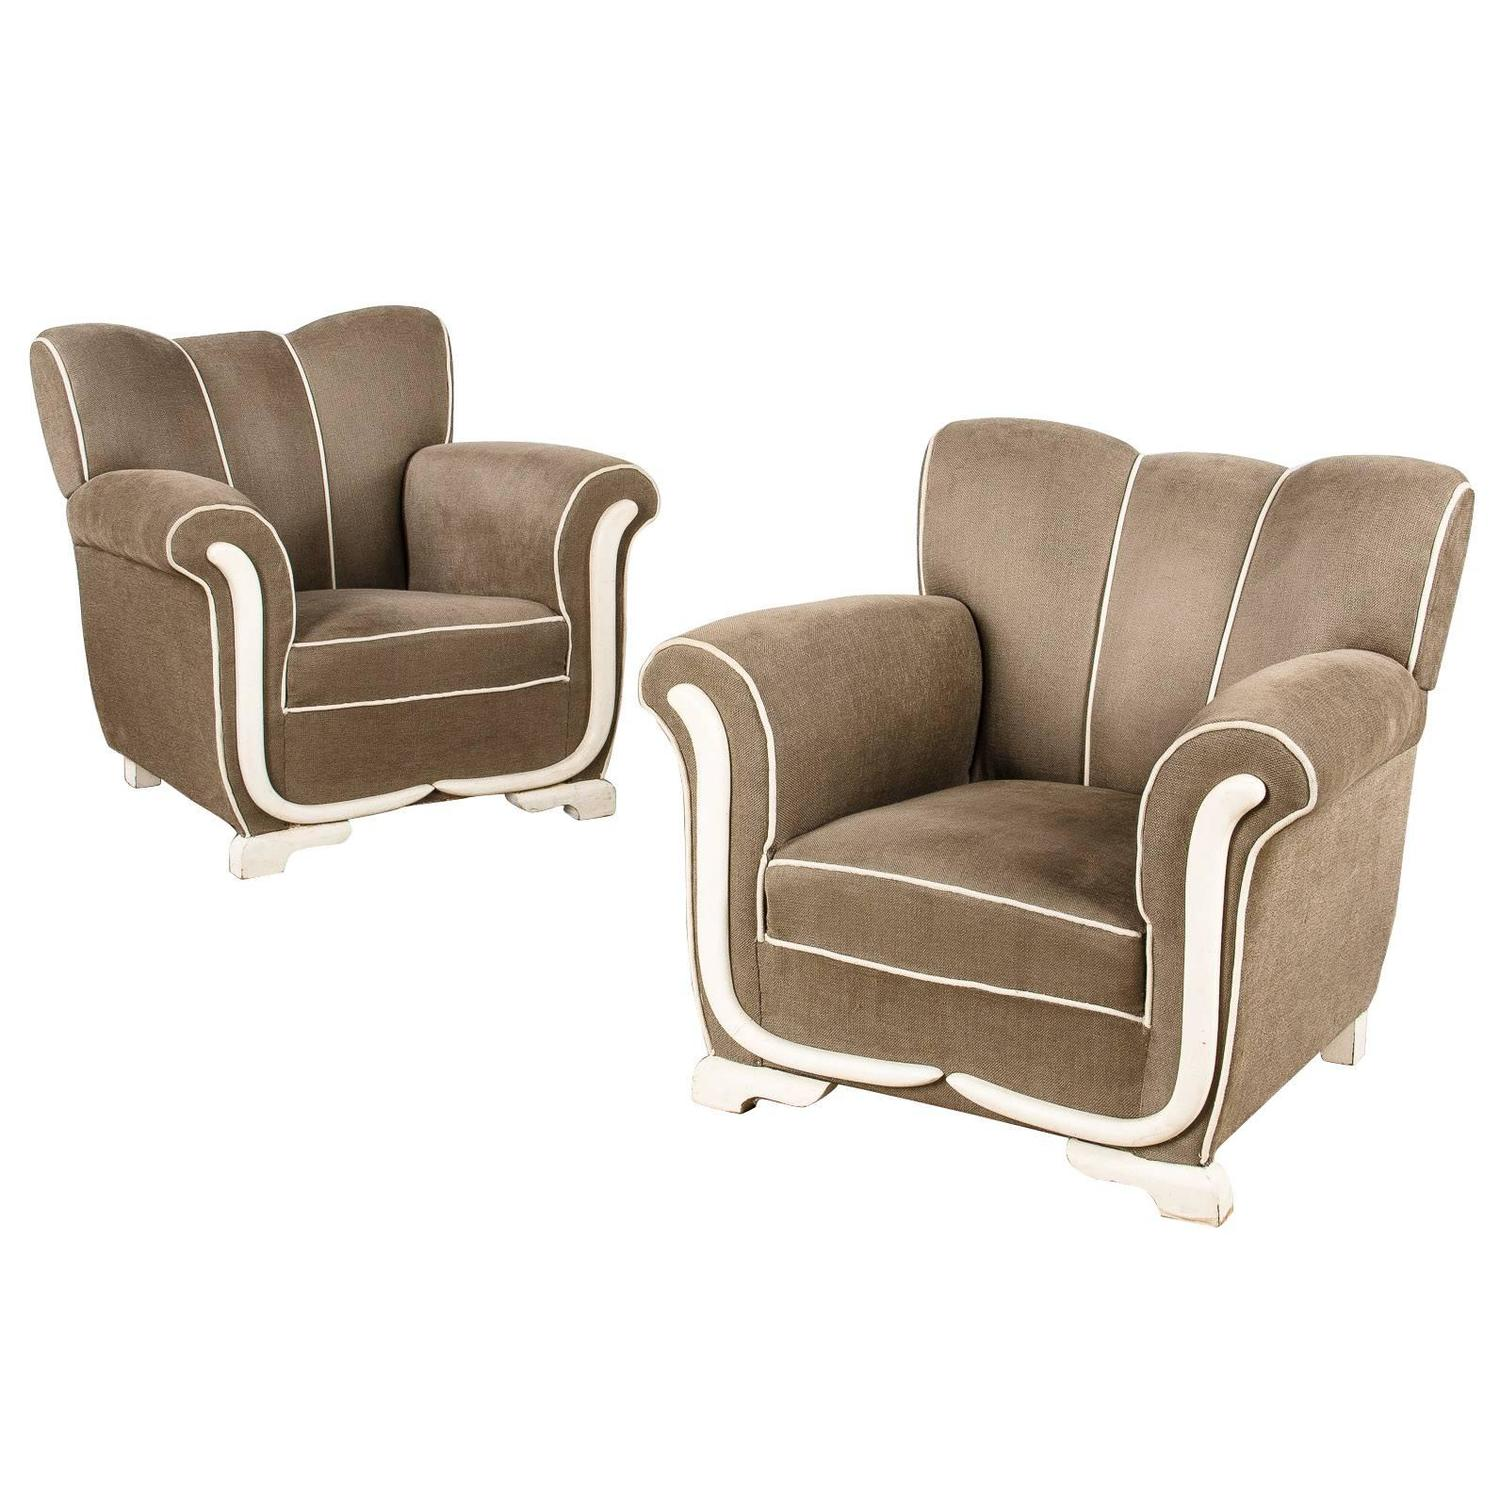 A Pair Of Period French Chairs With Missoni Fabric At 1stdibs: Pair Of Art Deco Upholstered French Armchairs, 1940s For